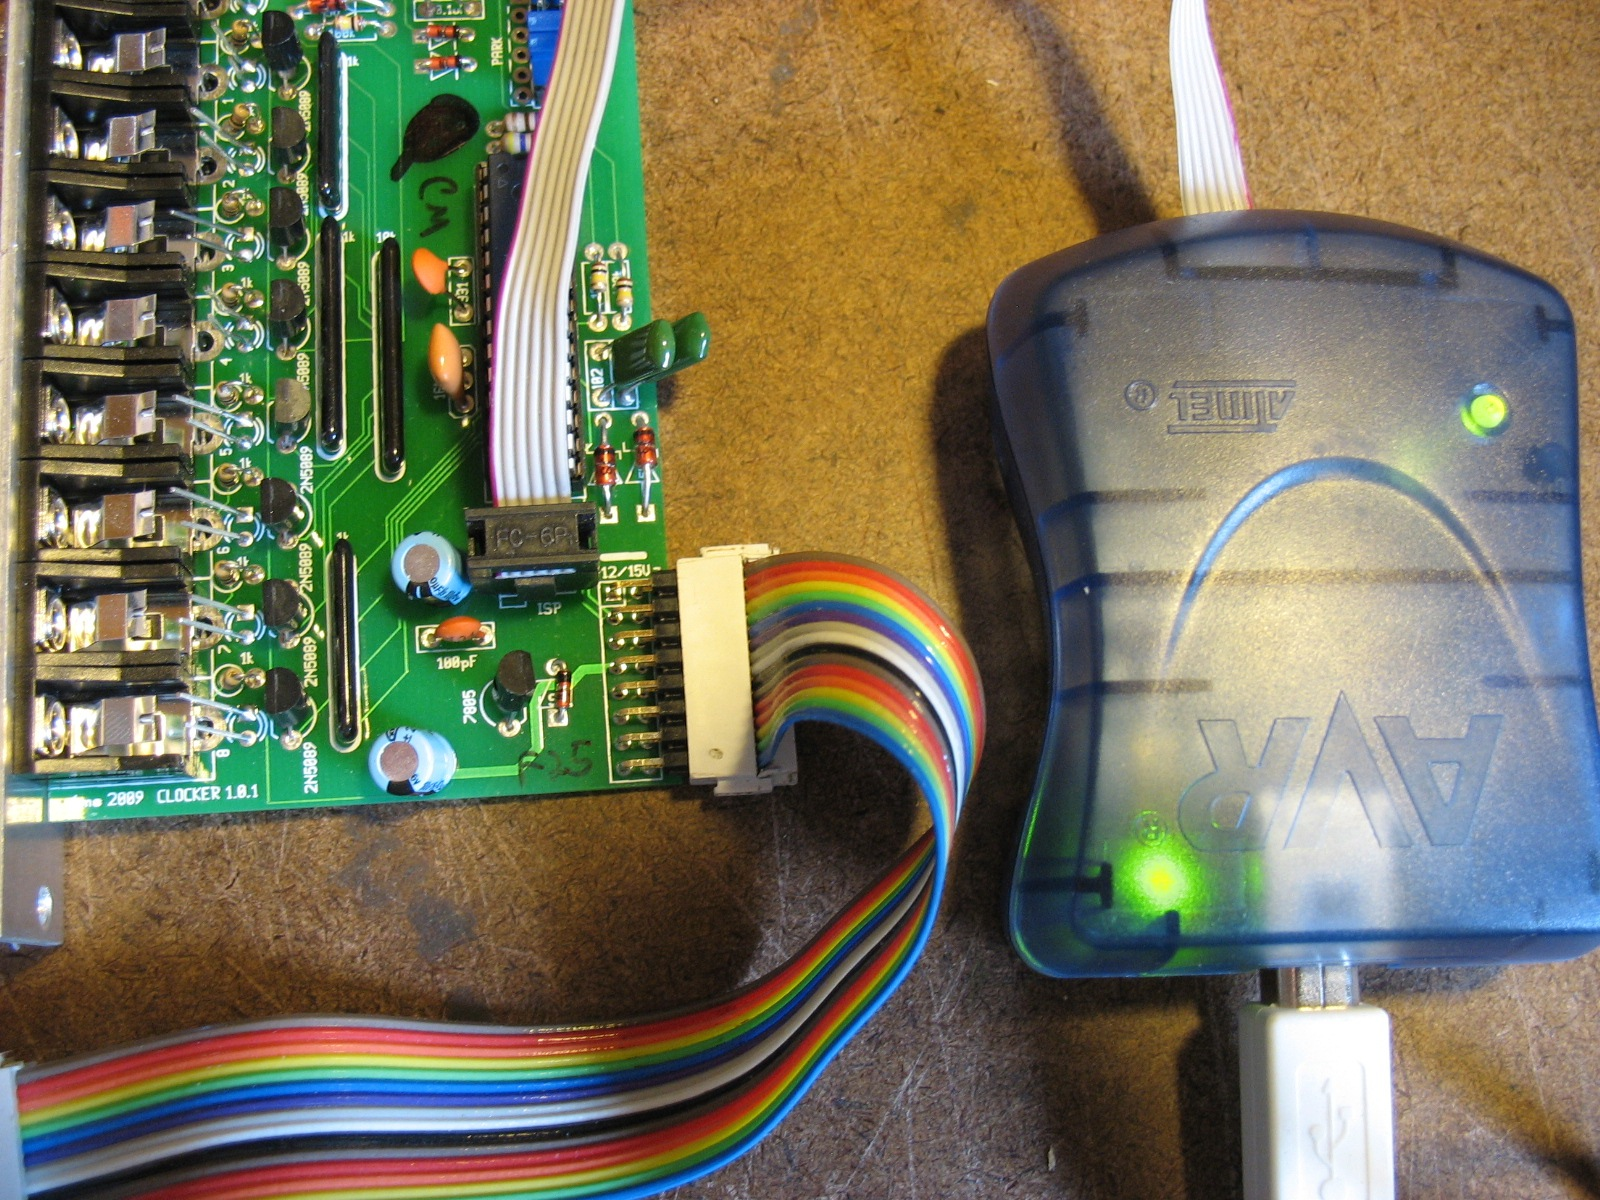 Updating firmware on AVR chips | 4ms Projects